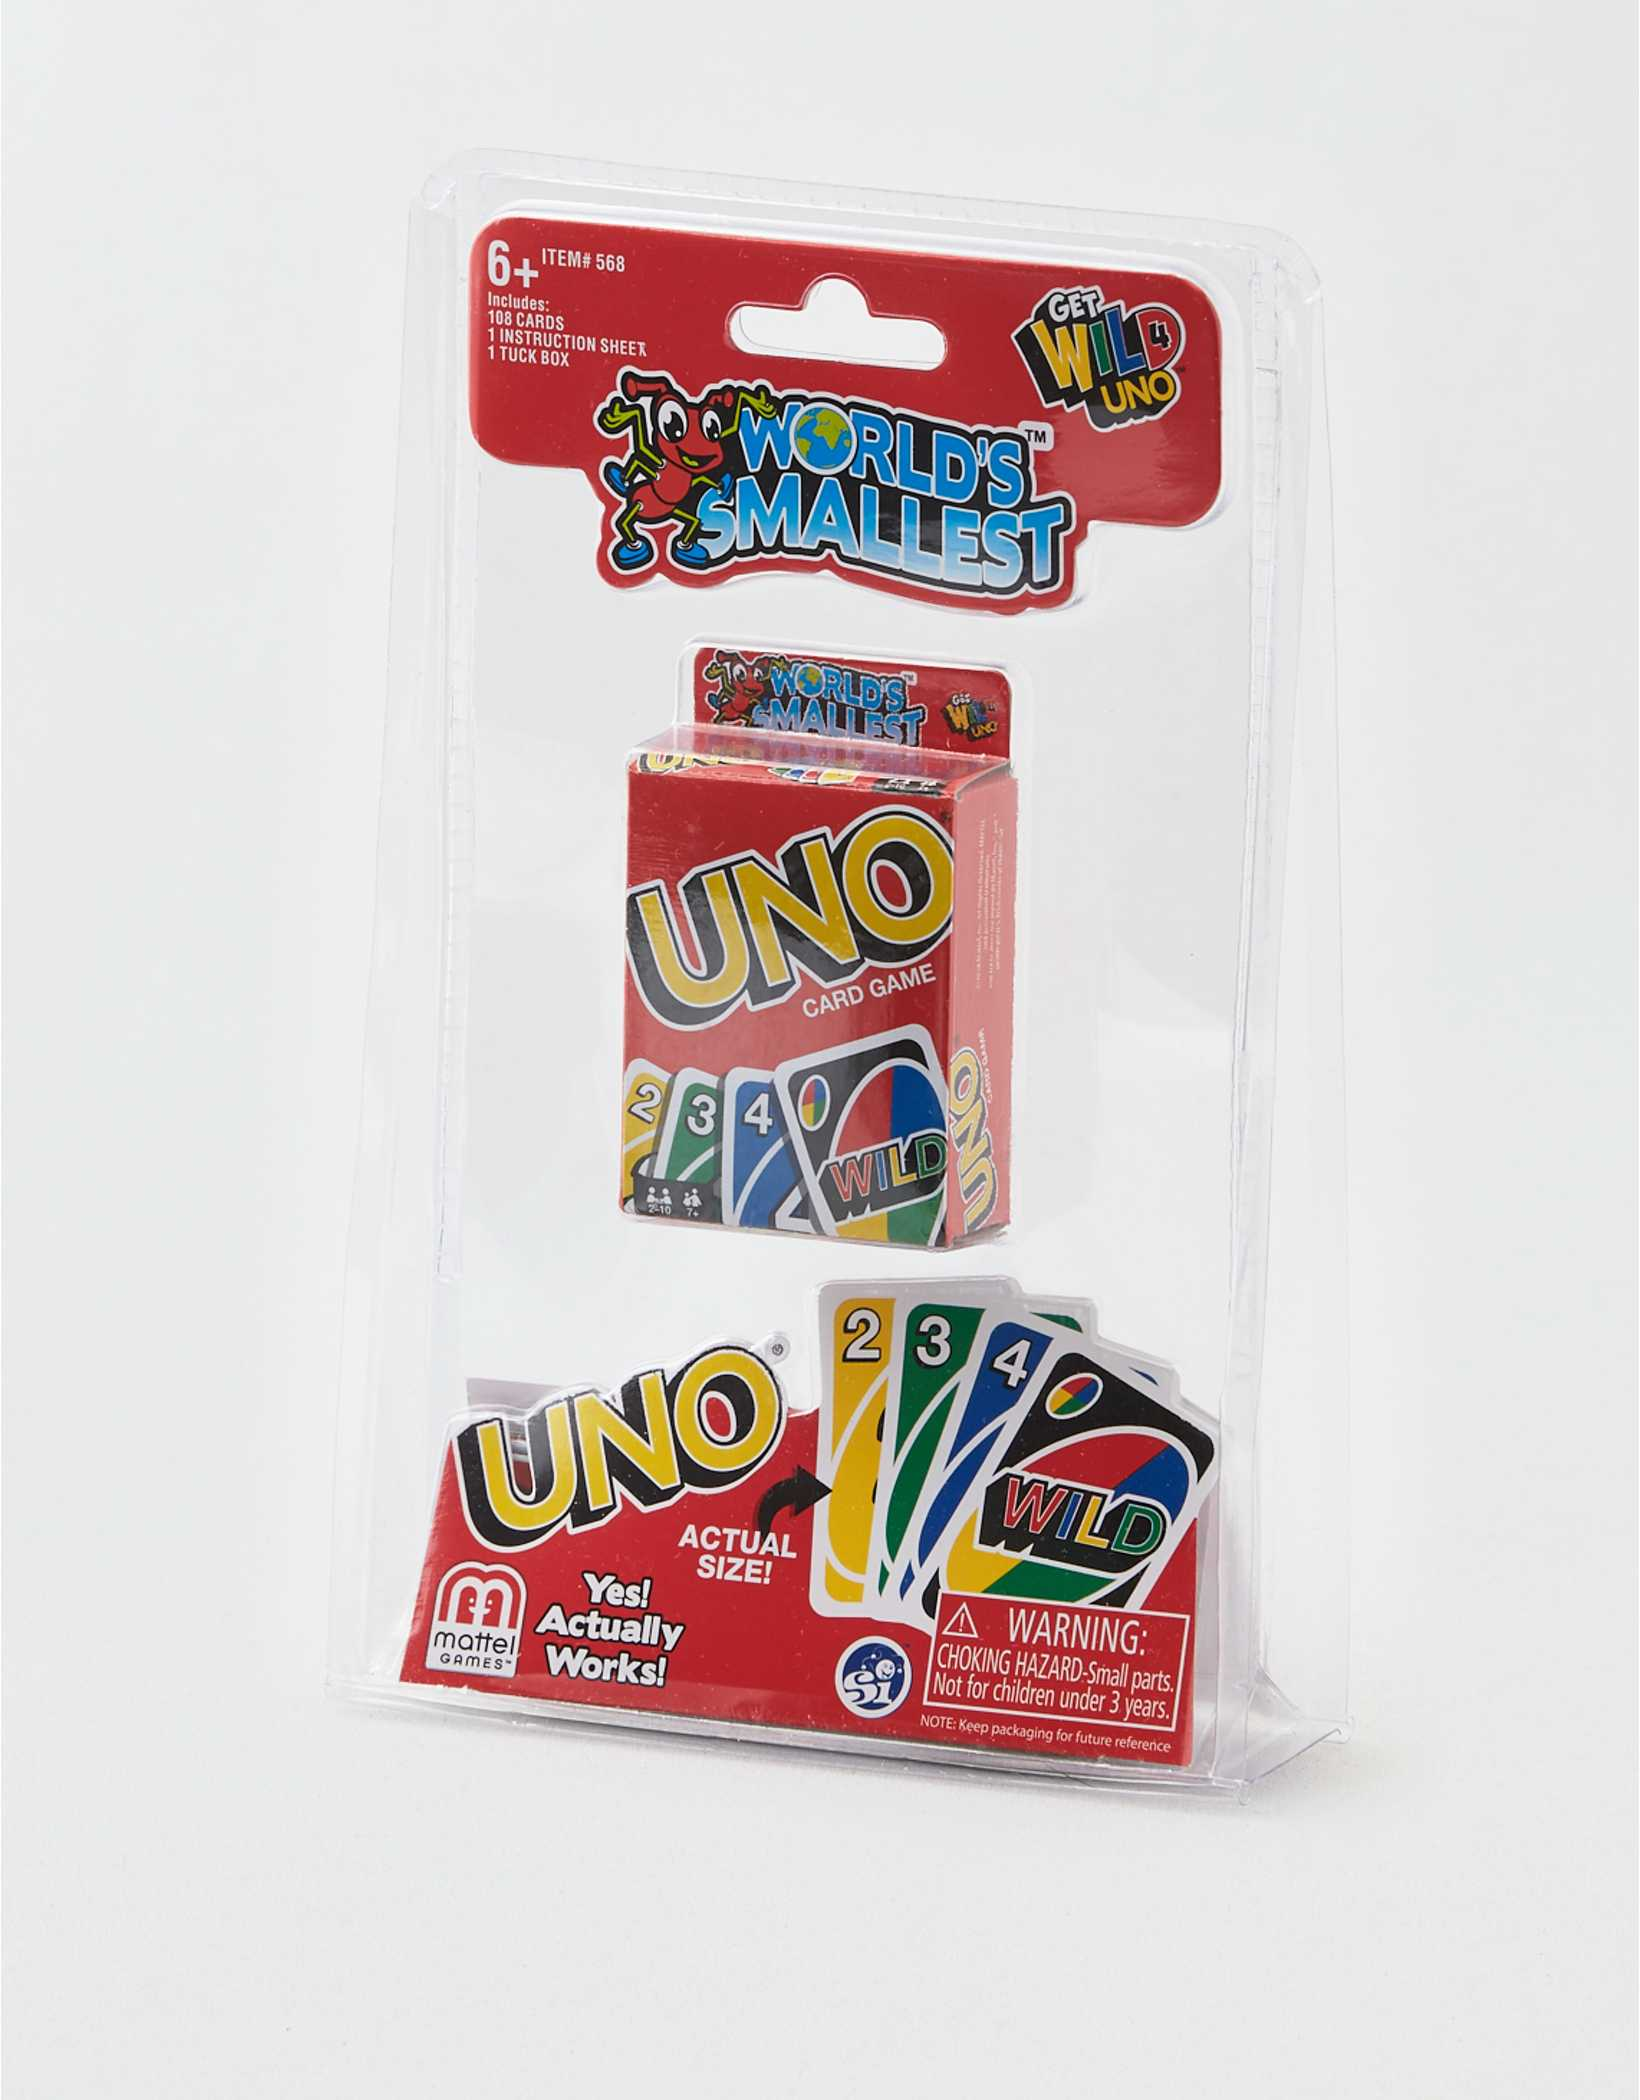 License to Play World's Smallest UNO